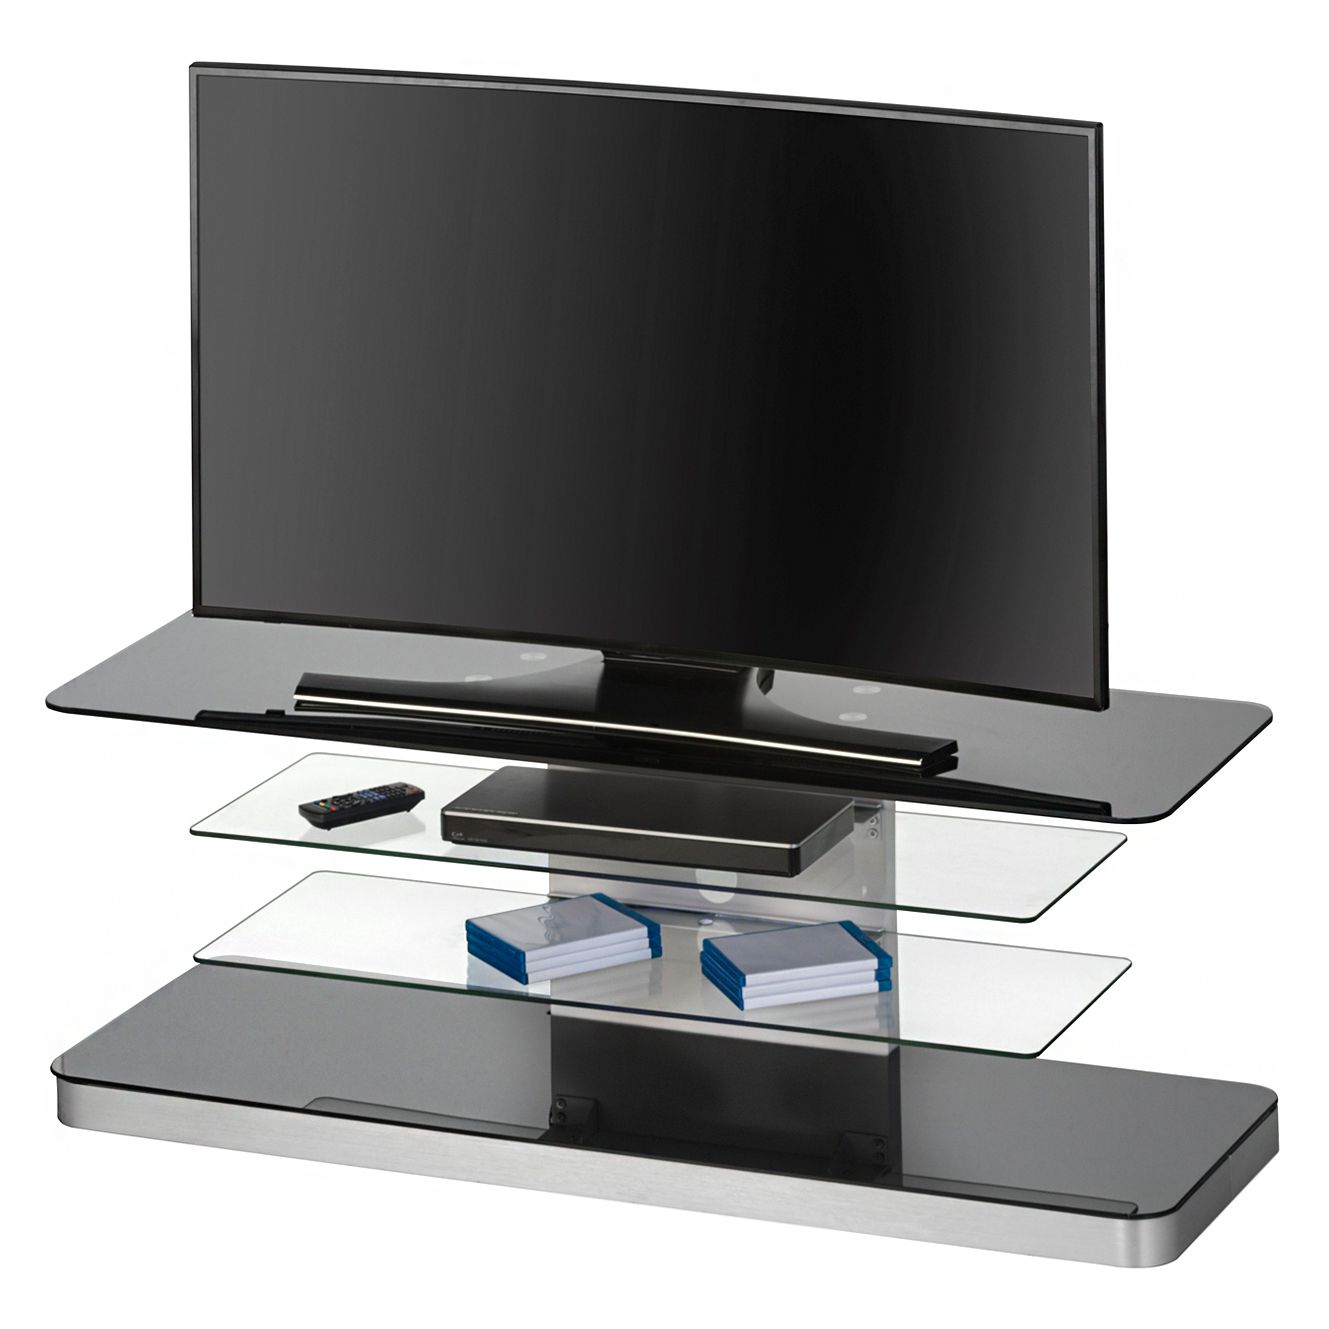 tv rack iserlohn schwarz maja m bel g nstig schnell einkaufen. Black Bedroom Furniture Sets. Home Design Ideas